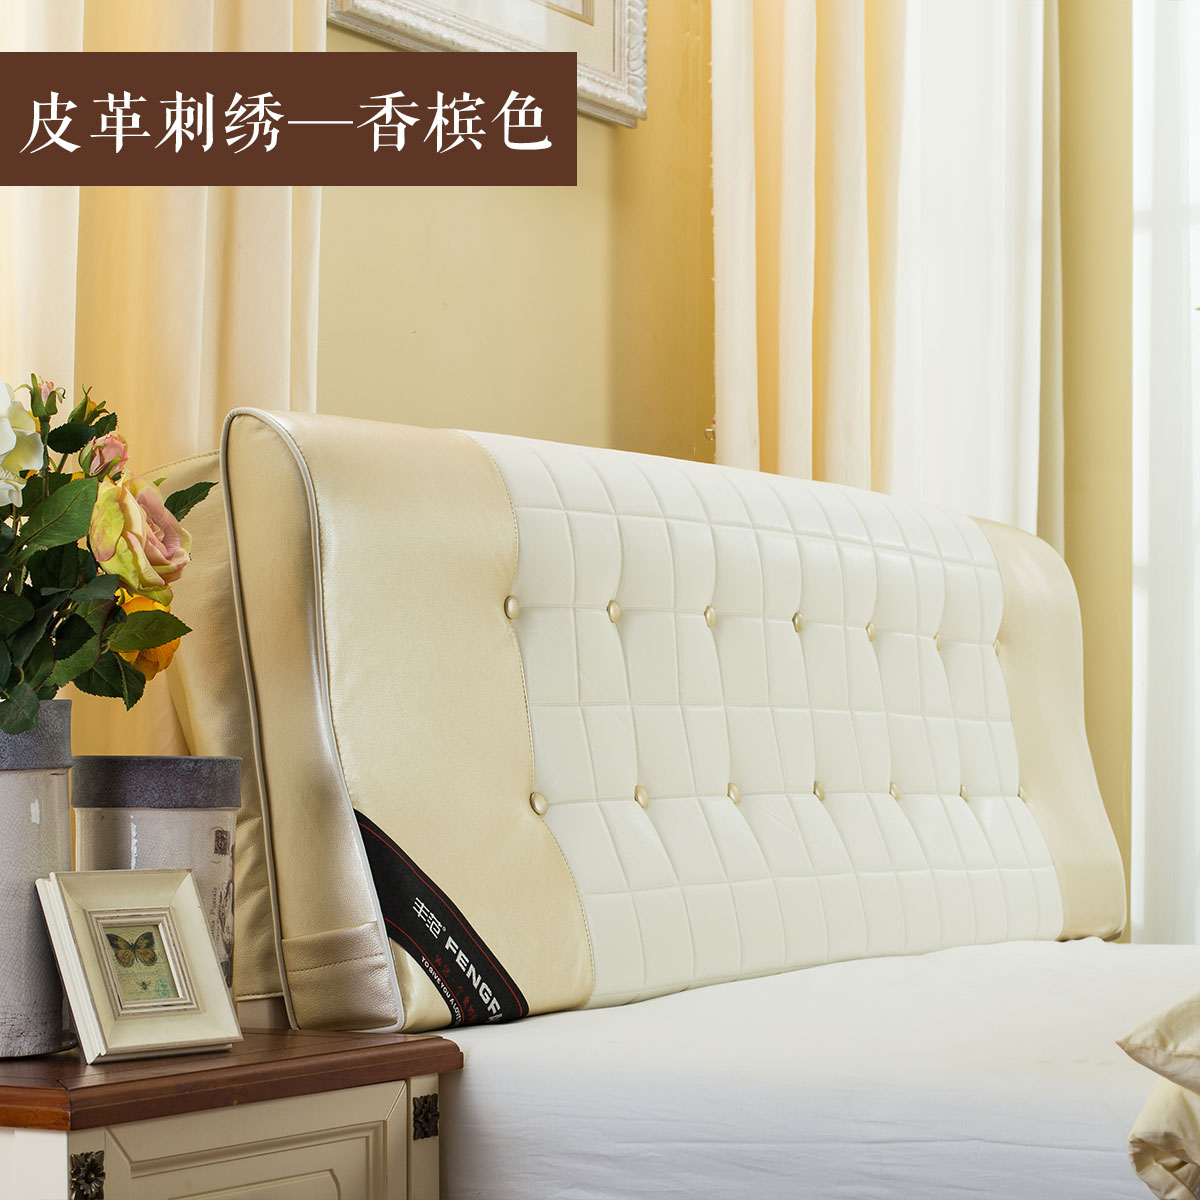 Double Bed Back Cushion Designs Home Decorating Ideas